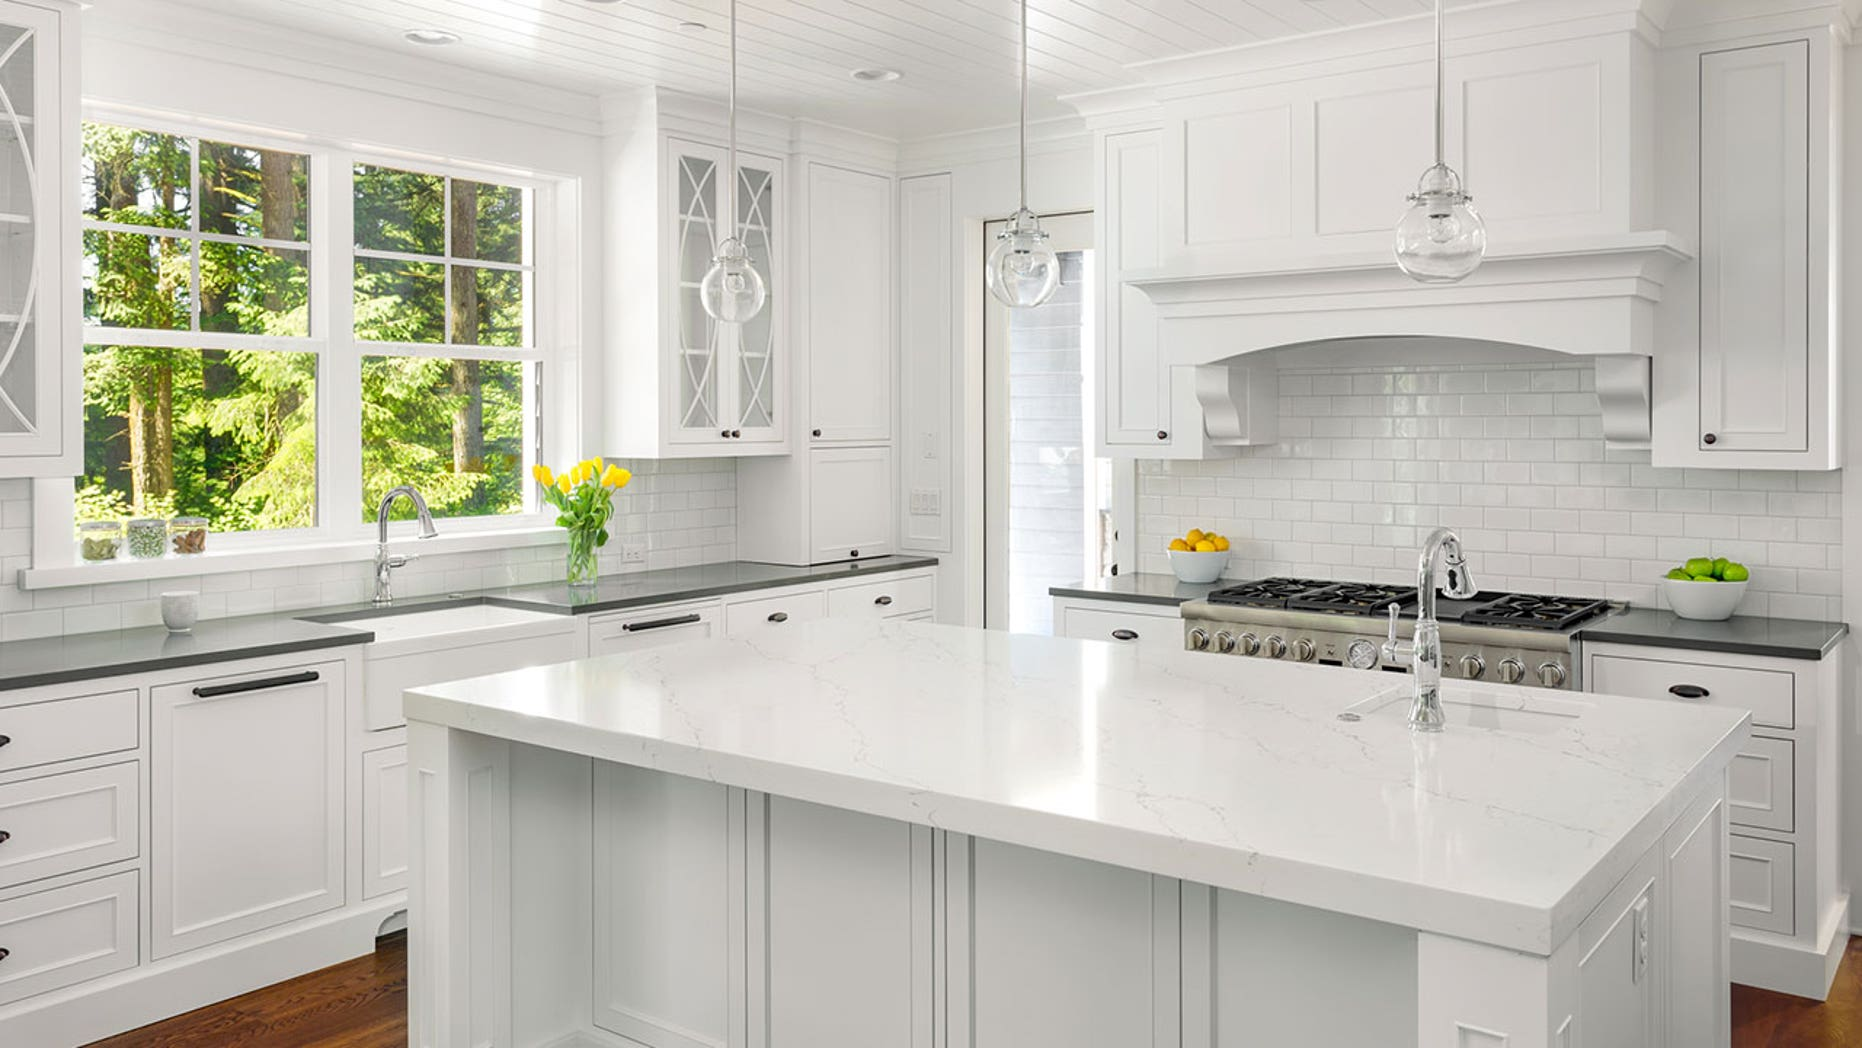 This kitchen has, like, 90 features home-buyers want, according to Trulia.